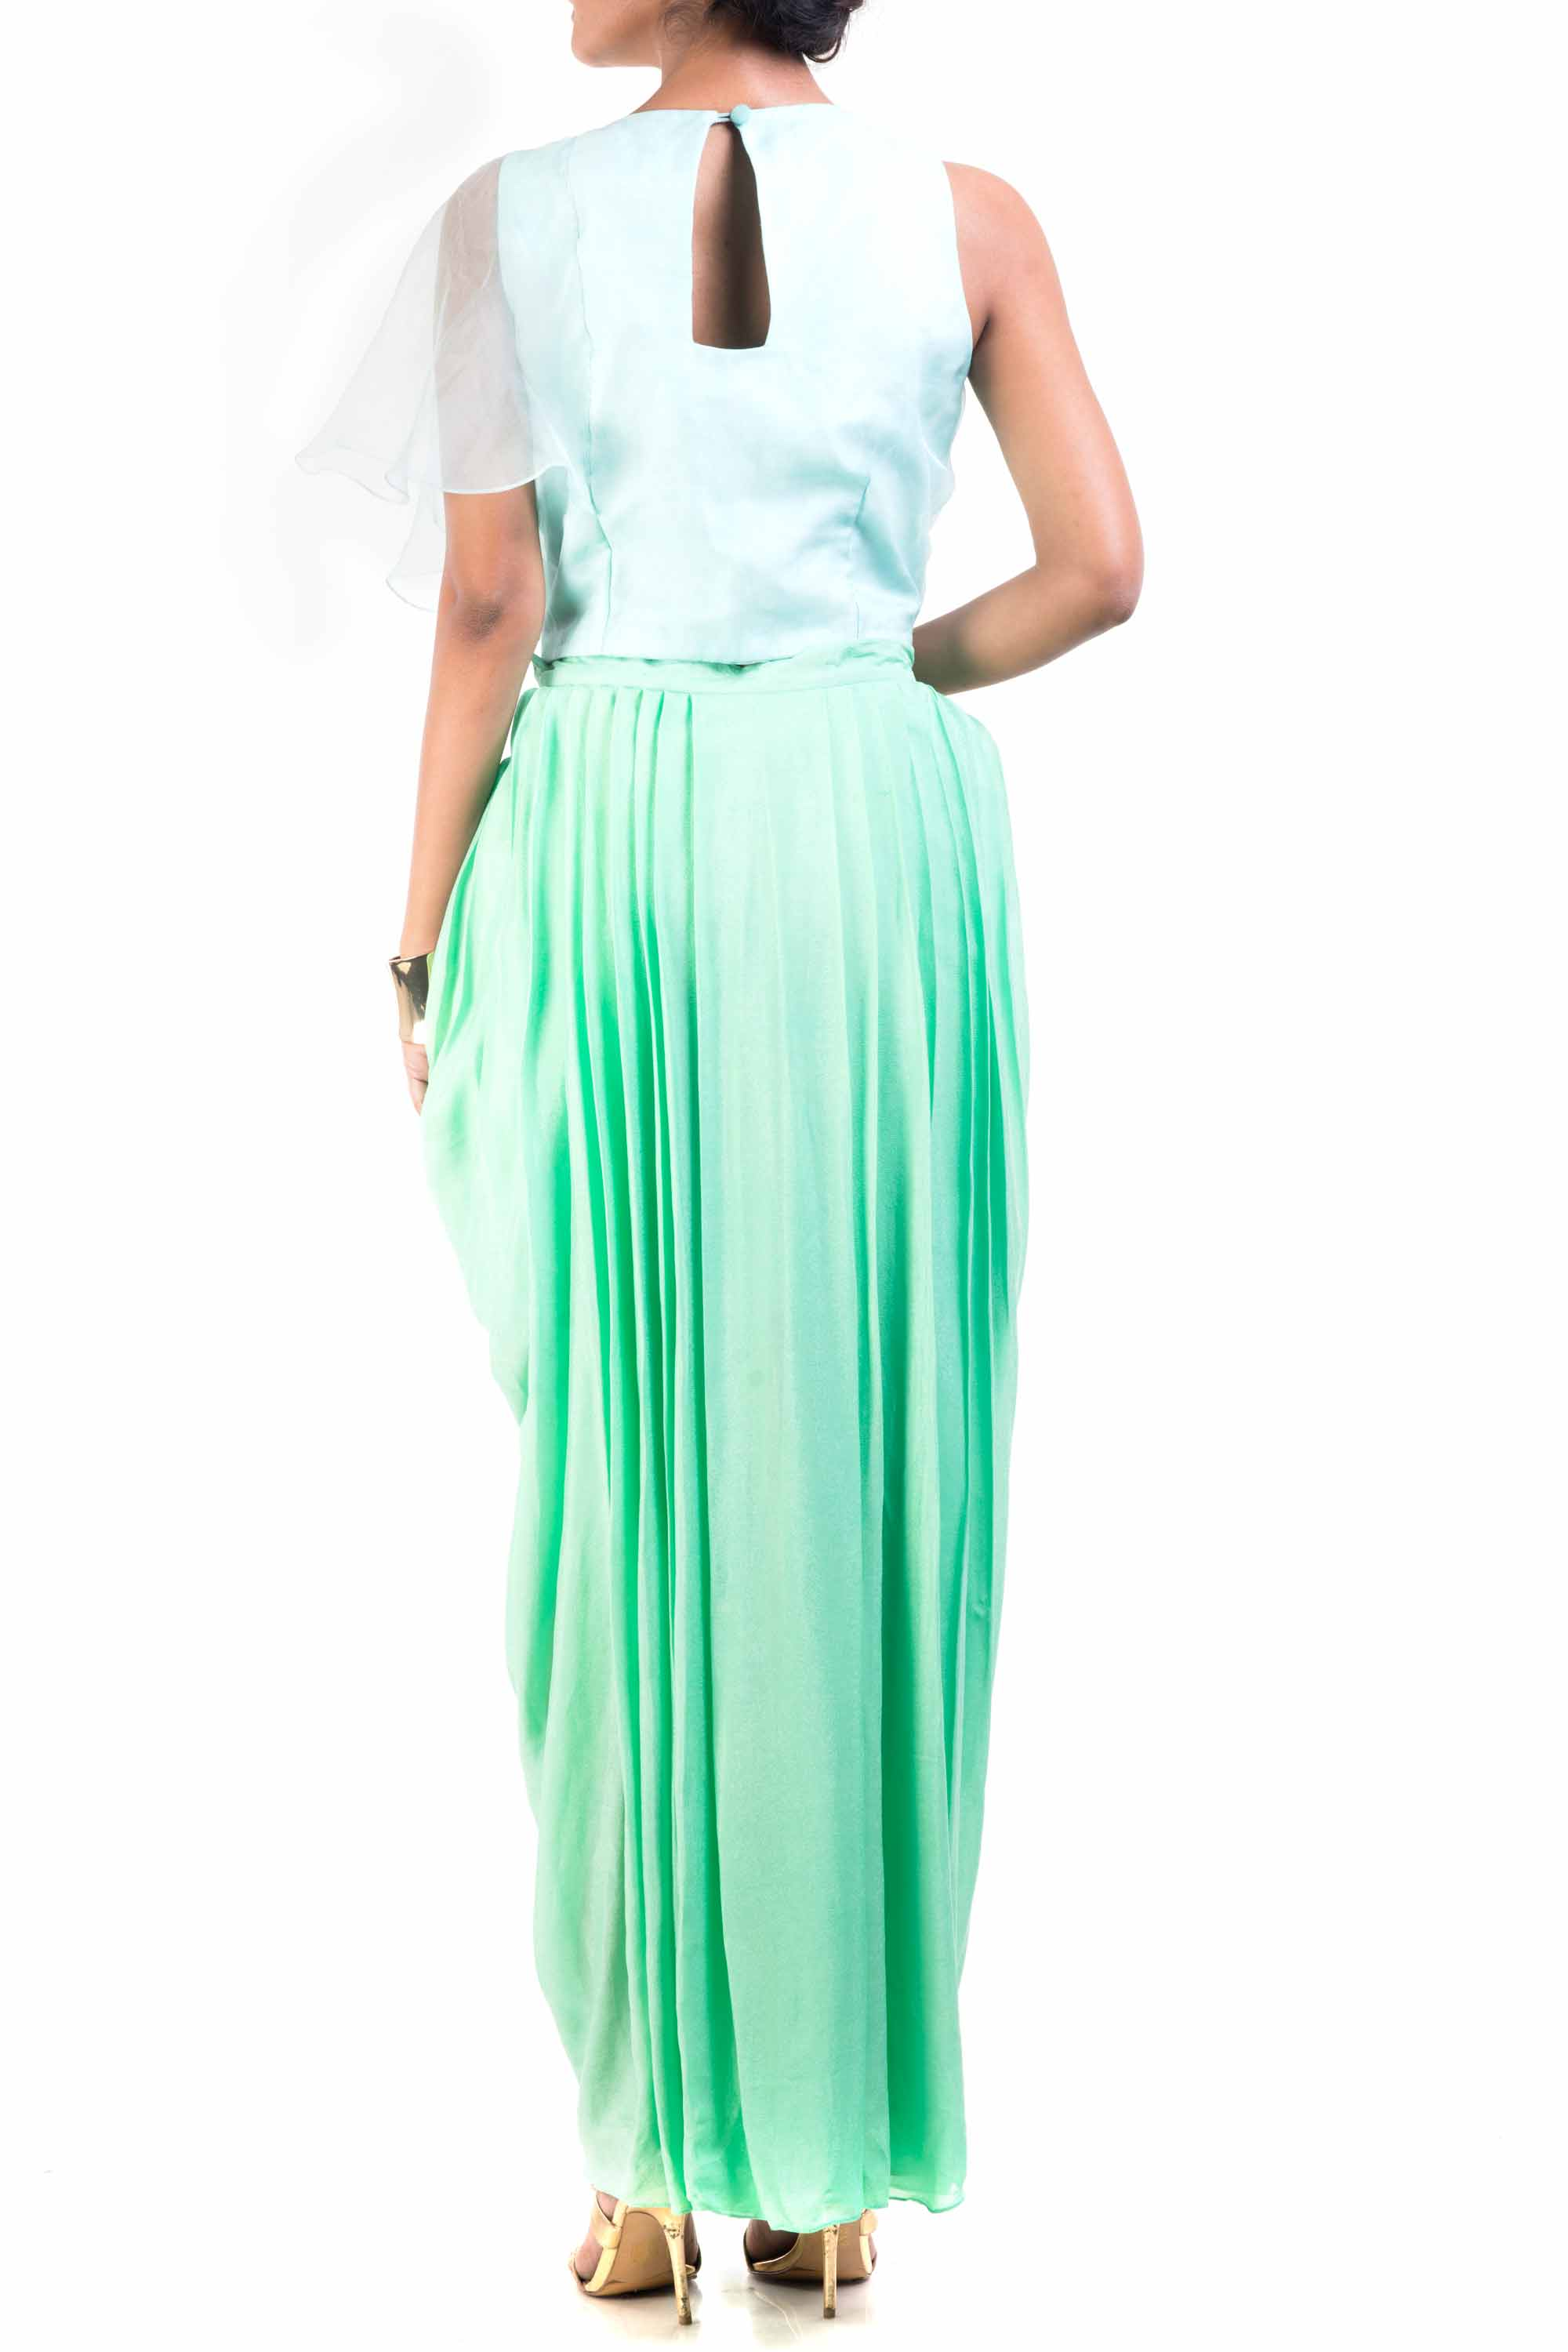 Sky Blue Cape-Cropper With Aqua Dhoti Wrap Skirt Back